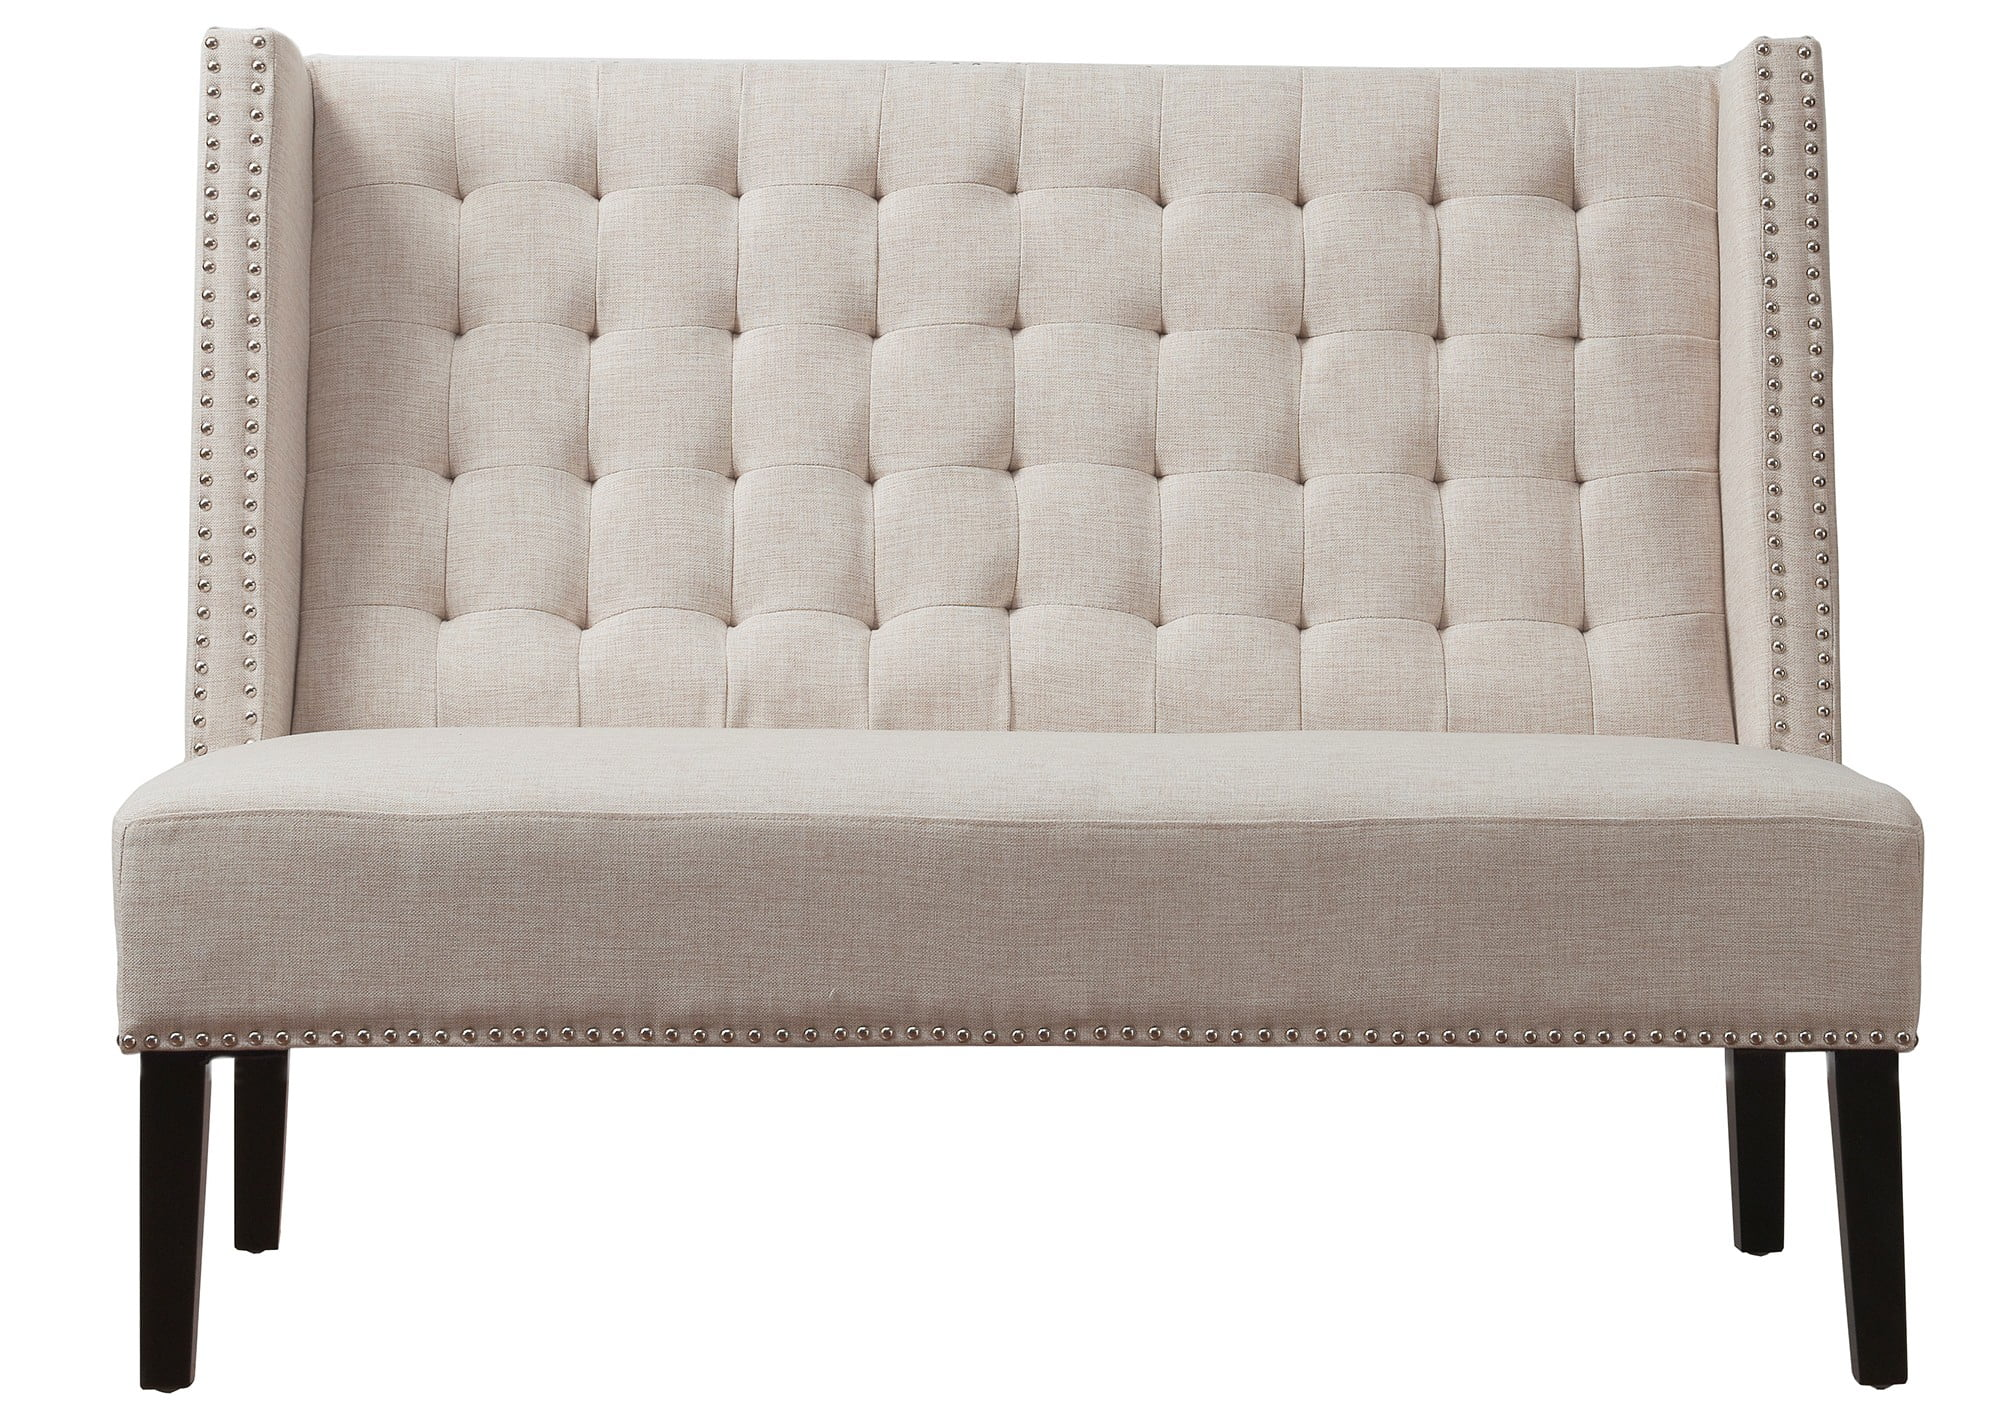 halifax beige linen banquette bench set of 2 from tov tov 63114 beige2 coleman furniture affordable chaise indoor